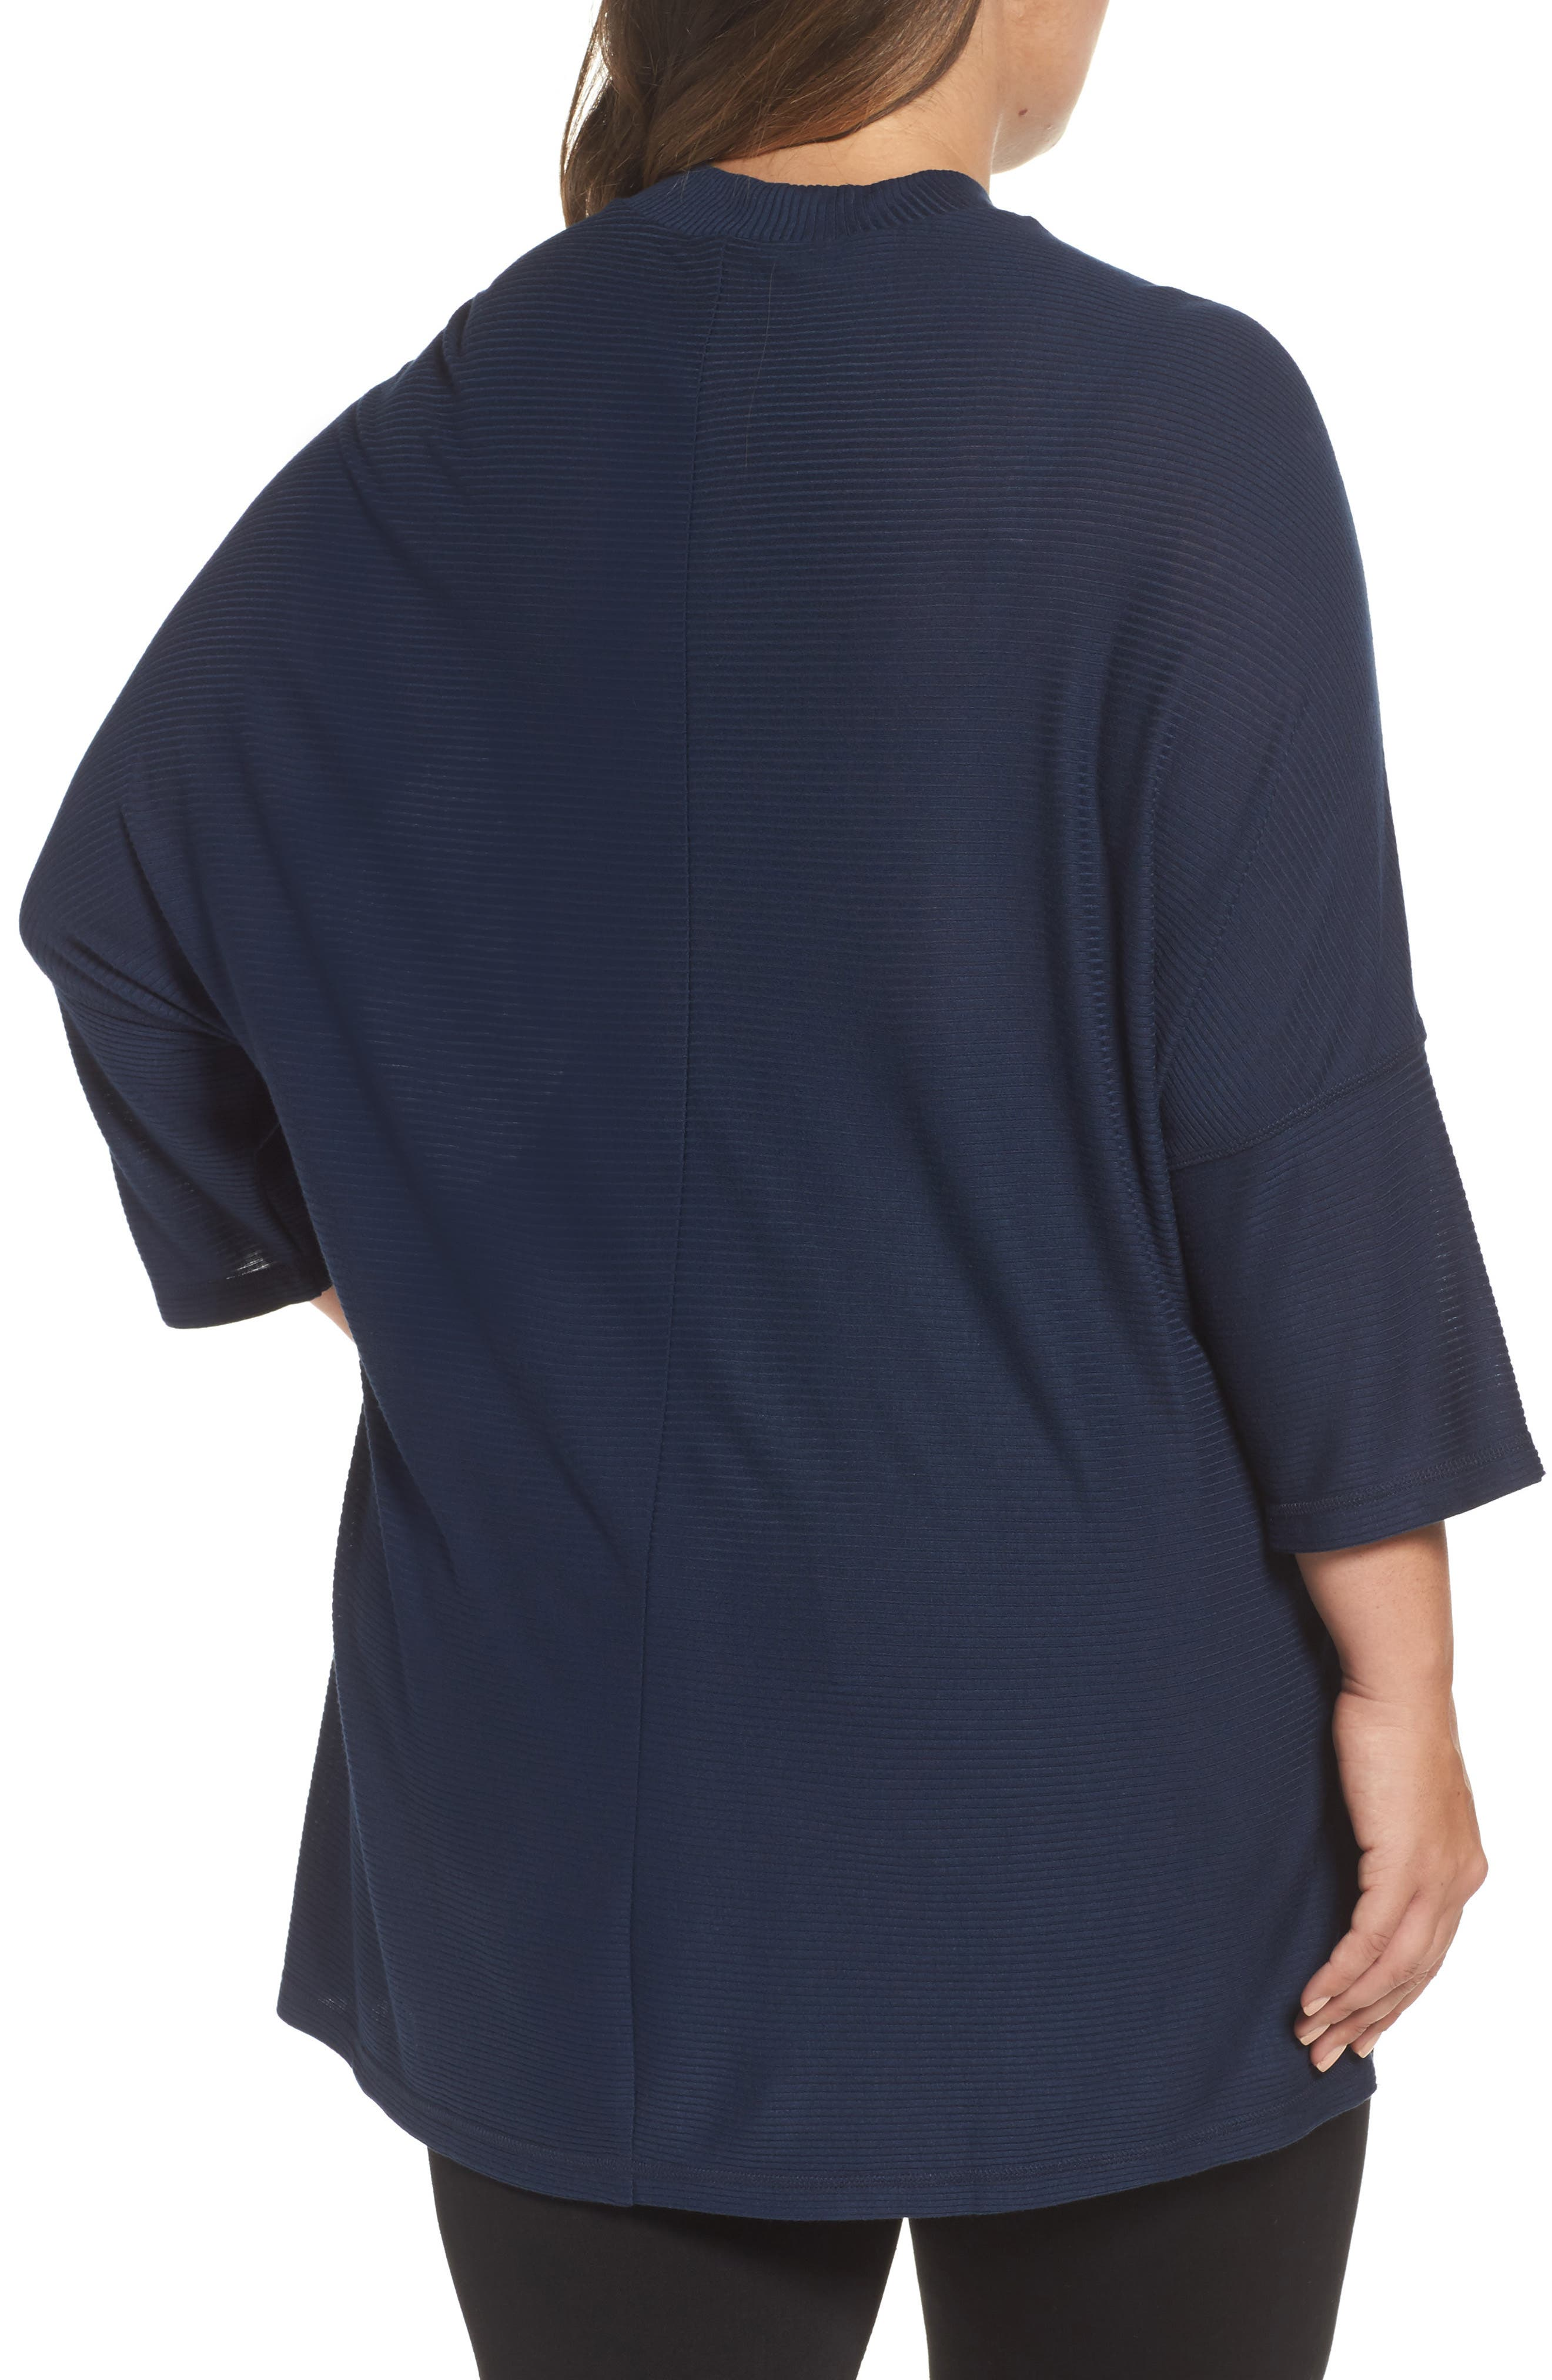 Alternate Image 2  - Melissa McCarthy Seven7 Mock Neck Rib Knit Top (Plus Size)